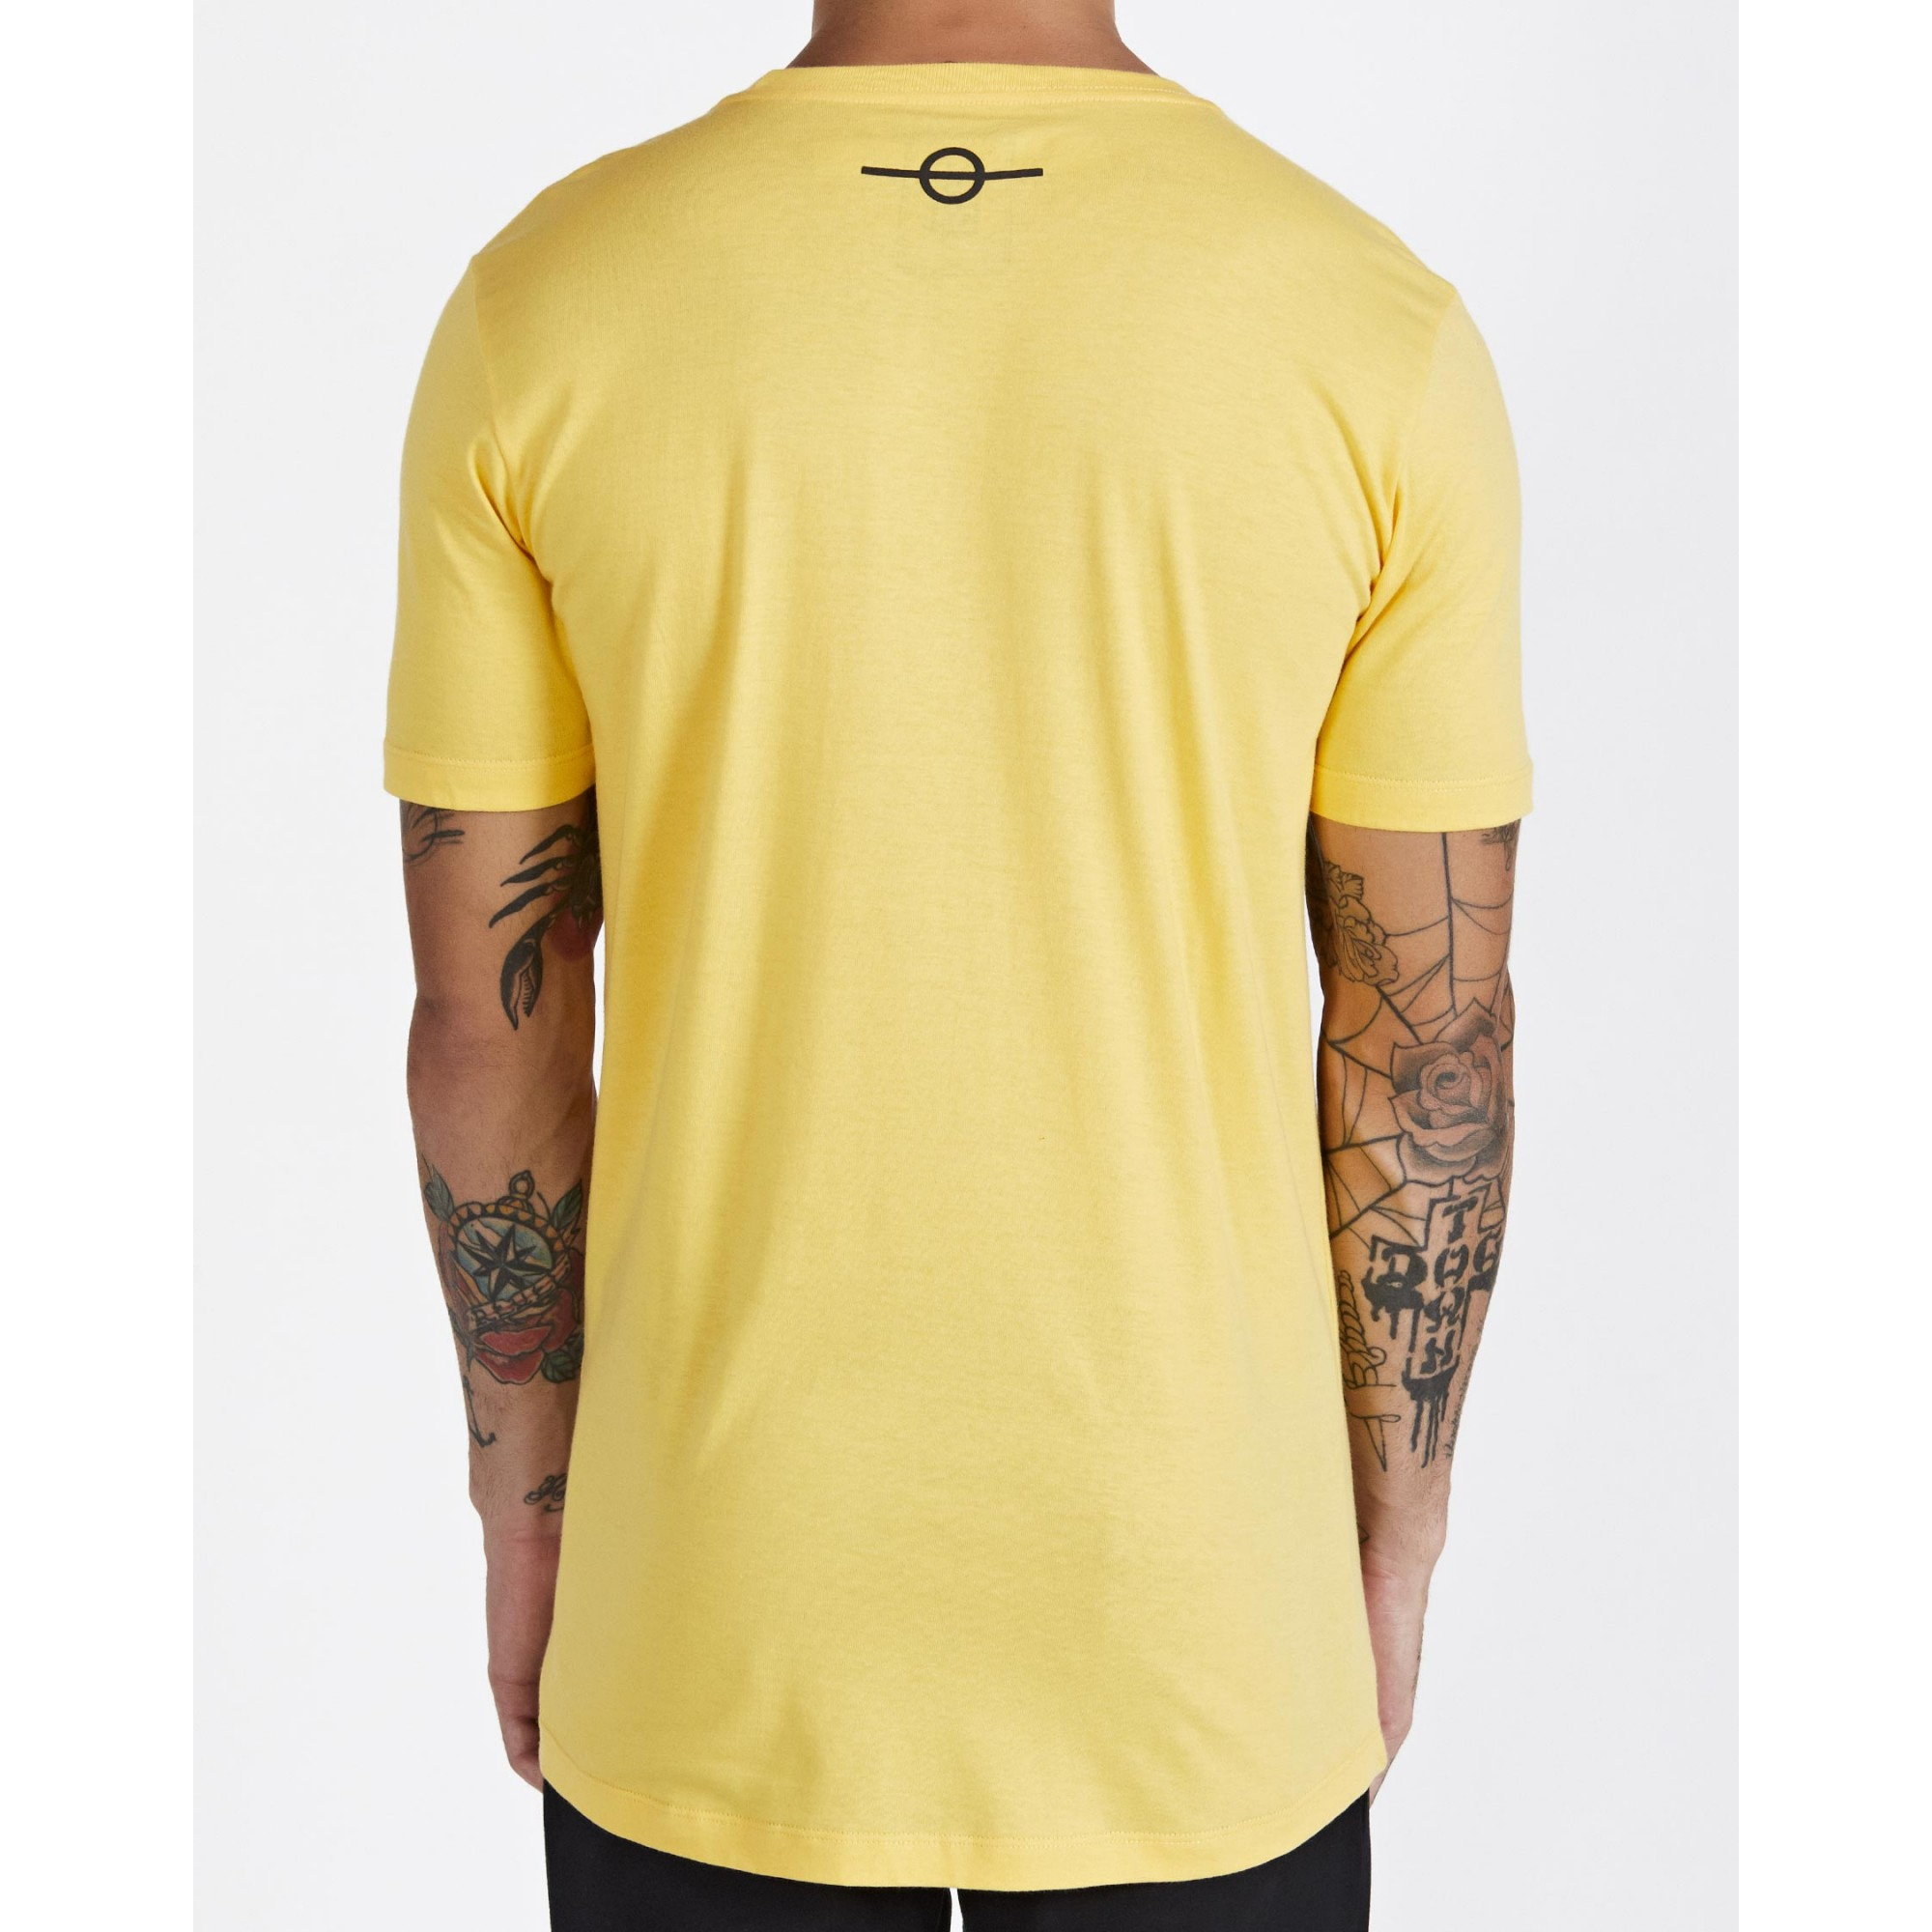 Camiseta Buh Bordado Fashion Soccer Yellow